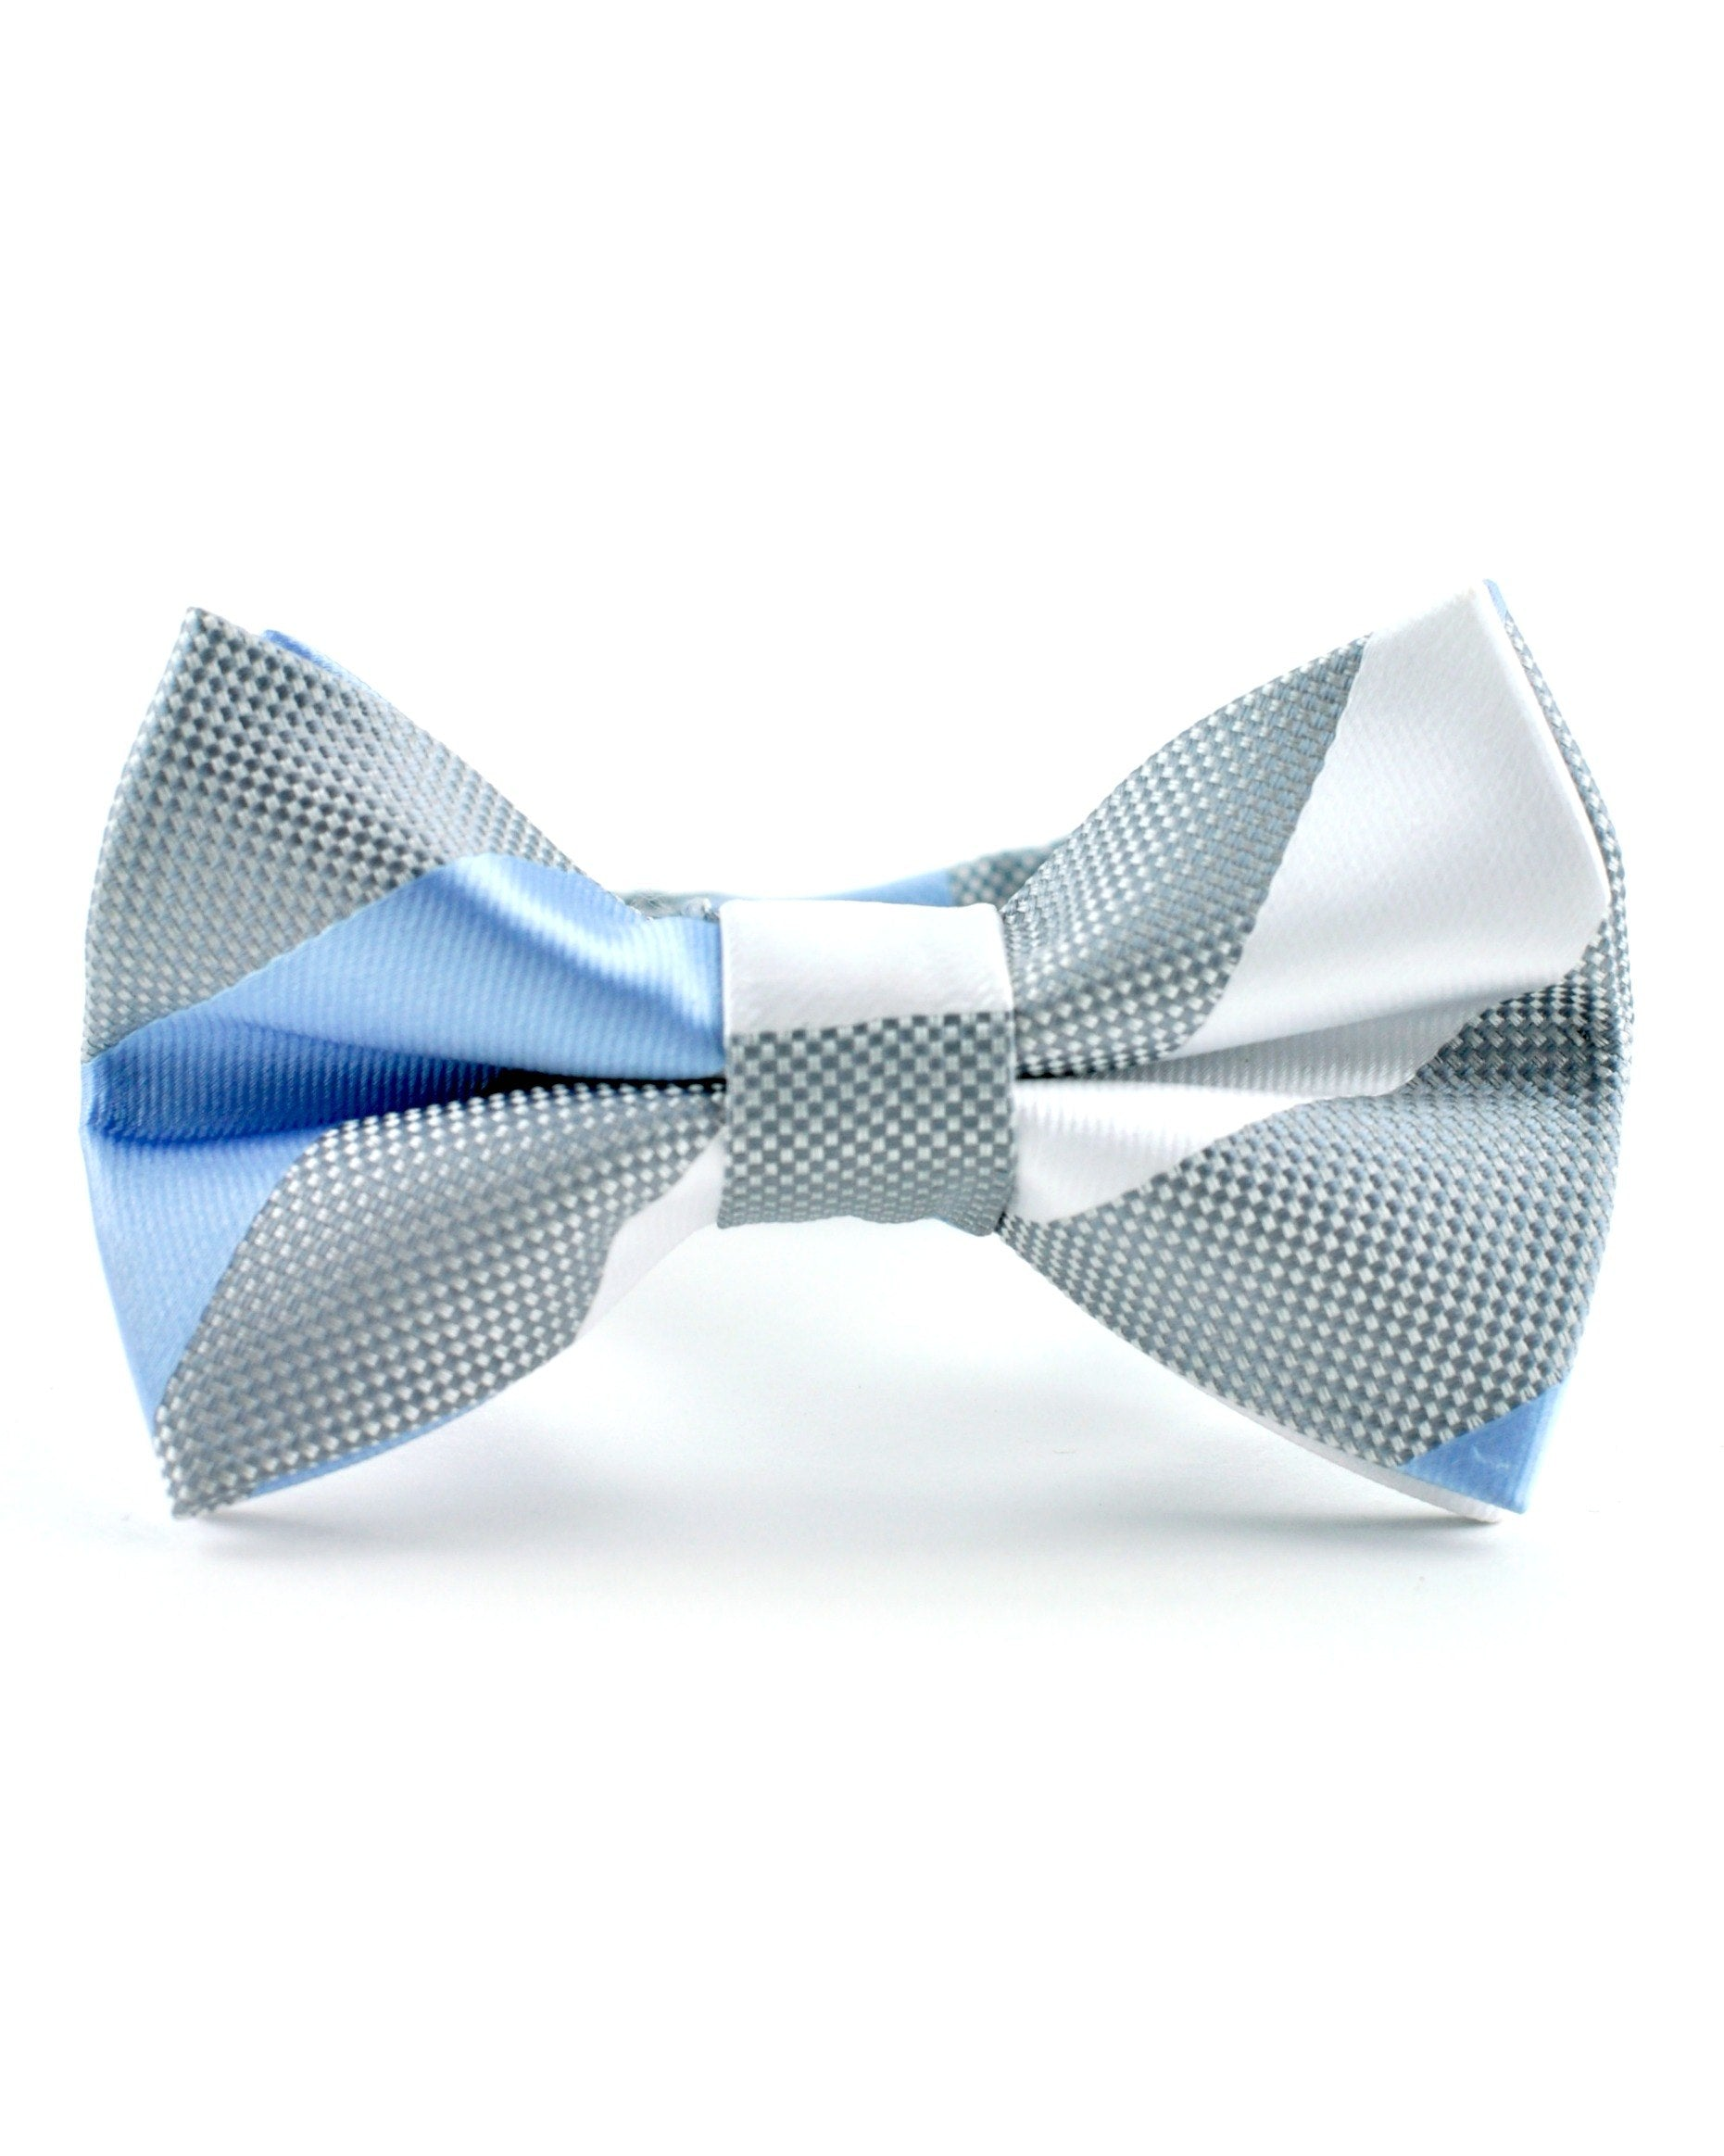 cloud-and-periwinkle-stripe-bow-tie.jpeg